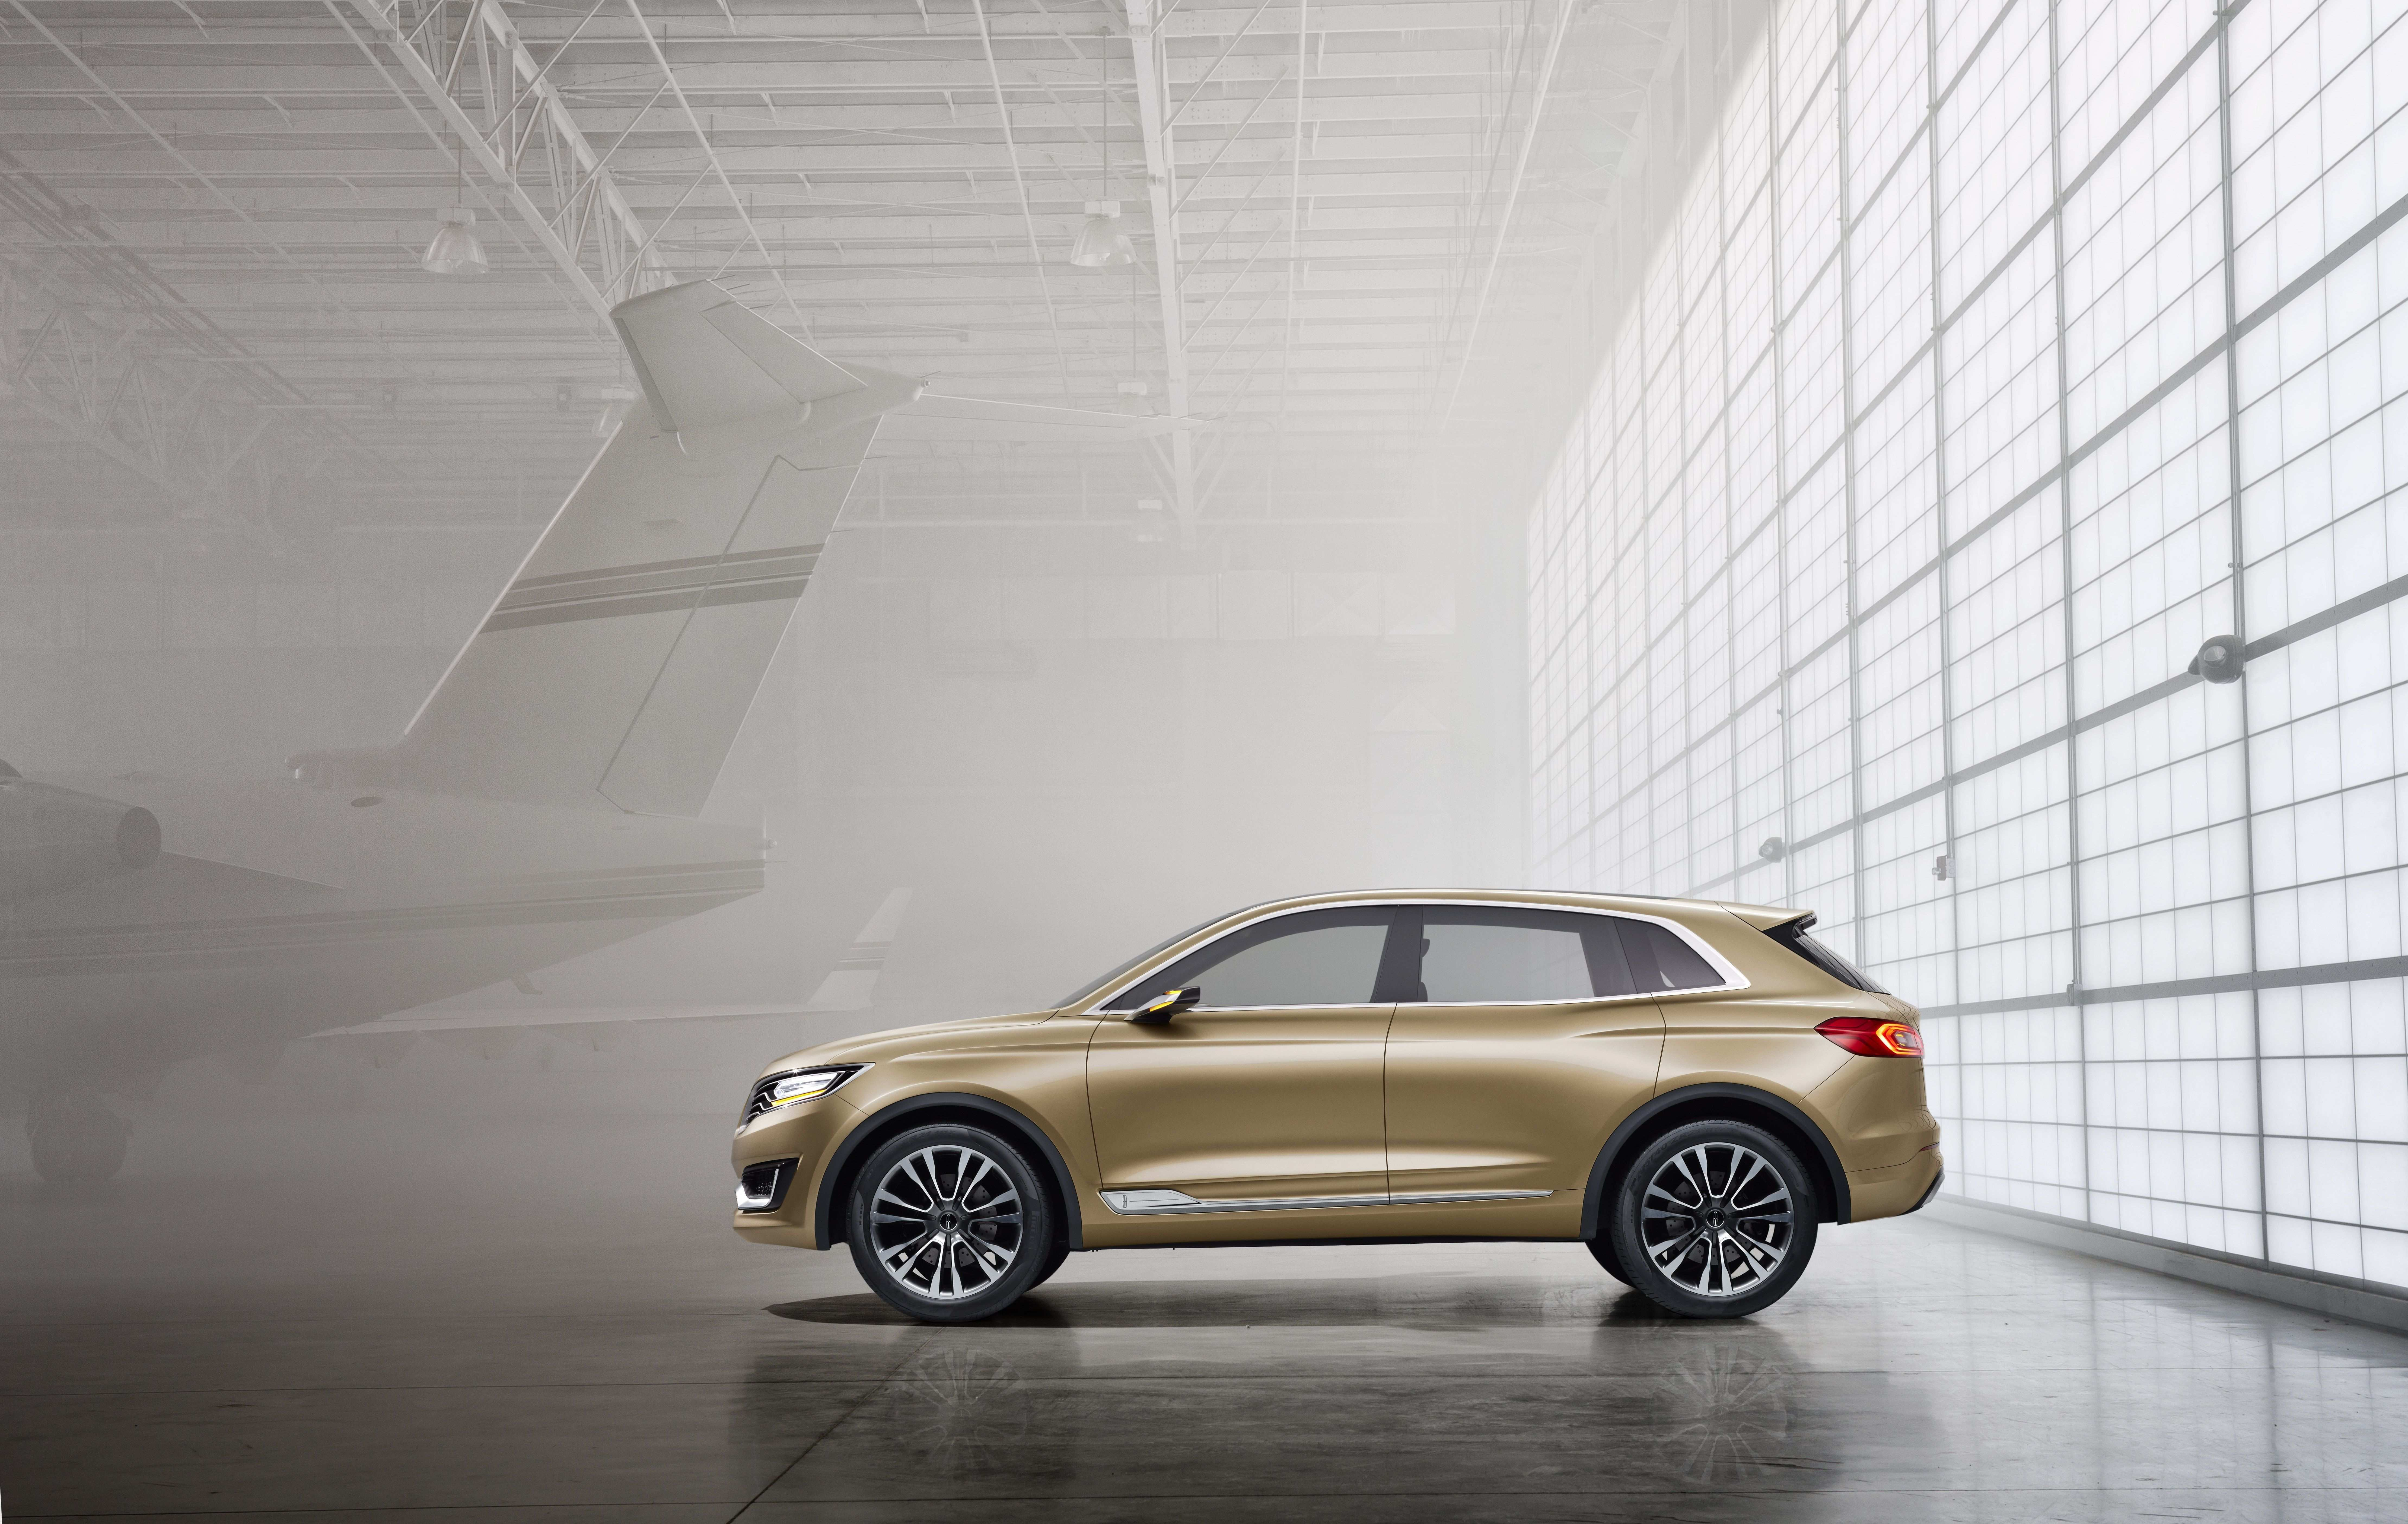 74 New 2019 Lincoln Mkx At Beijing Motor Show Picture